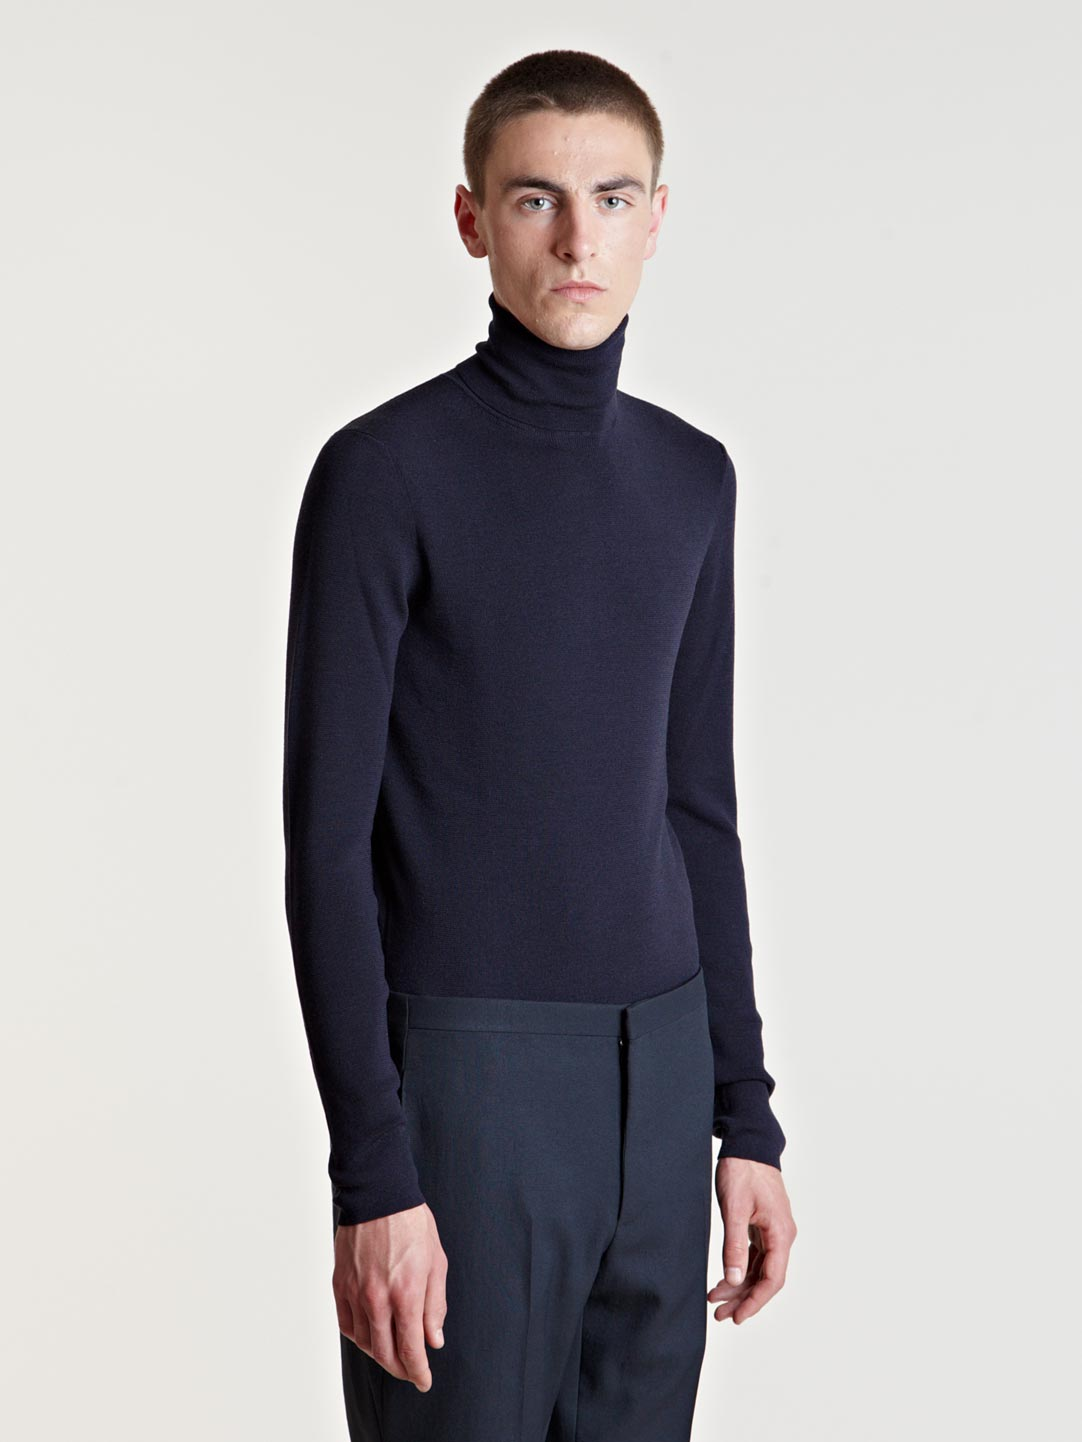 Size 12 Turtle neck jumper. Posted by Elle in Men's Clothing, Jumpers. New look turtle neck in grey. Size 12 Turtle neck jumper. Posted by Elle in Men's Clothing, Jumpers. Close the cookie policy warning. By using this site you agree to the use of cookies. Find out more about our cookie policy.